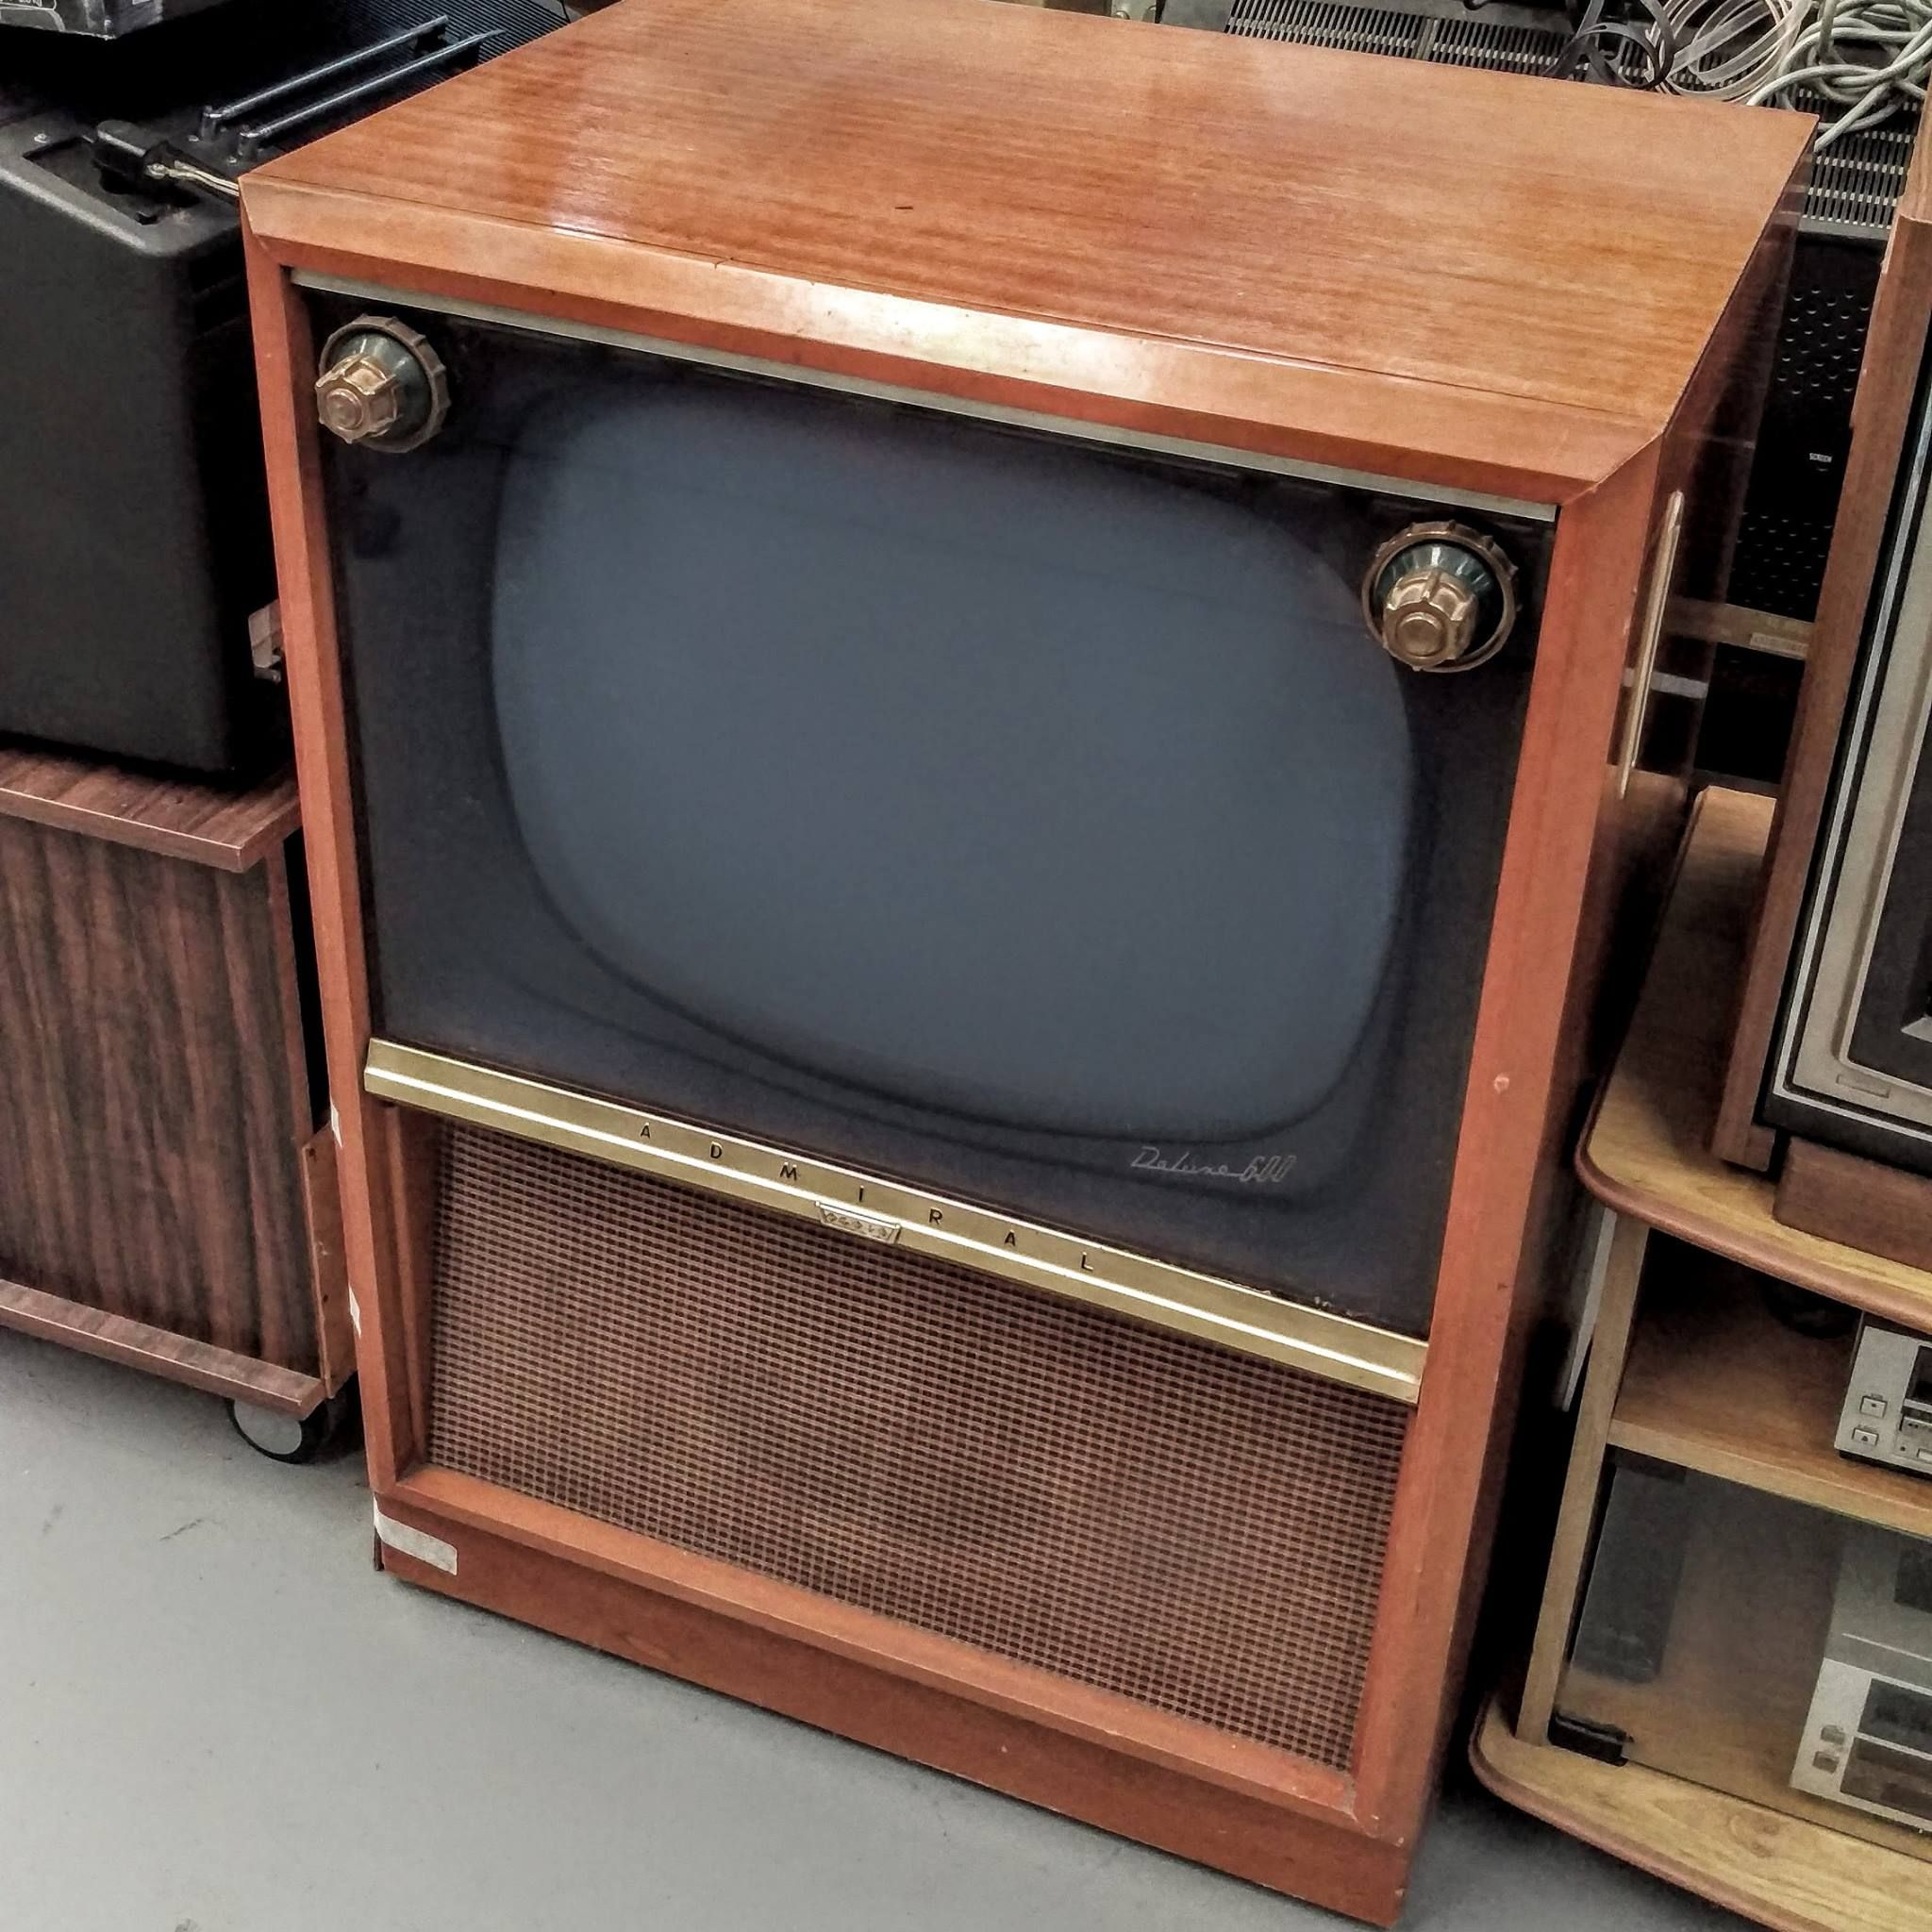 Tv Boxes Australia Admiral Tv From 1956 Courtesy Neogadgets Vintage Black